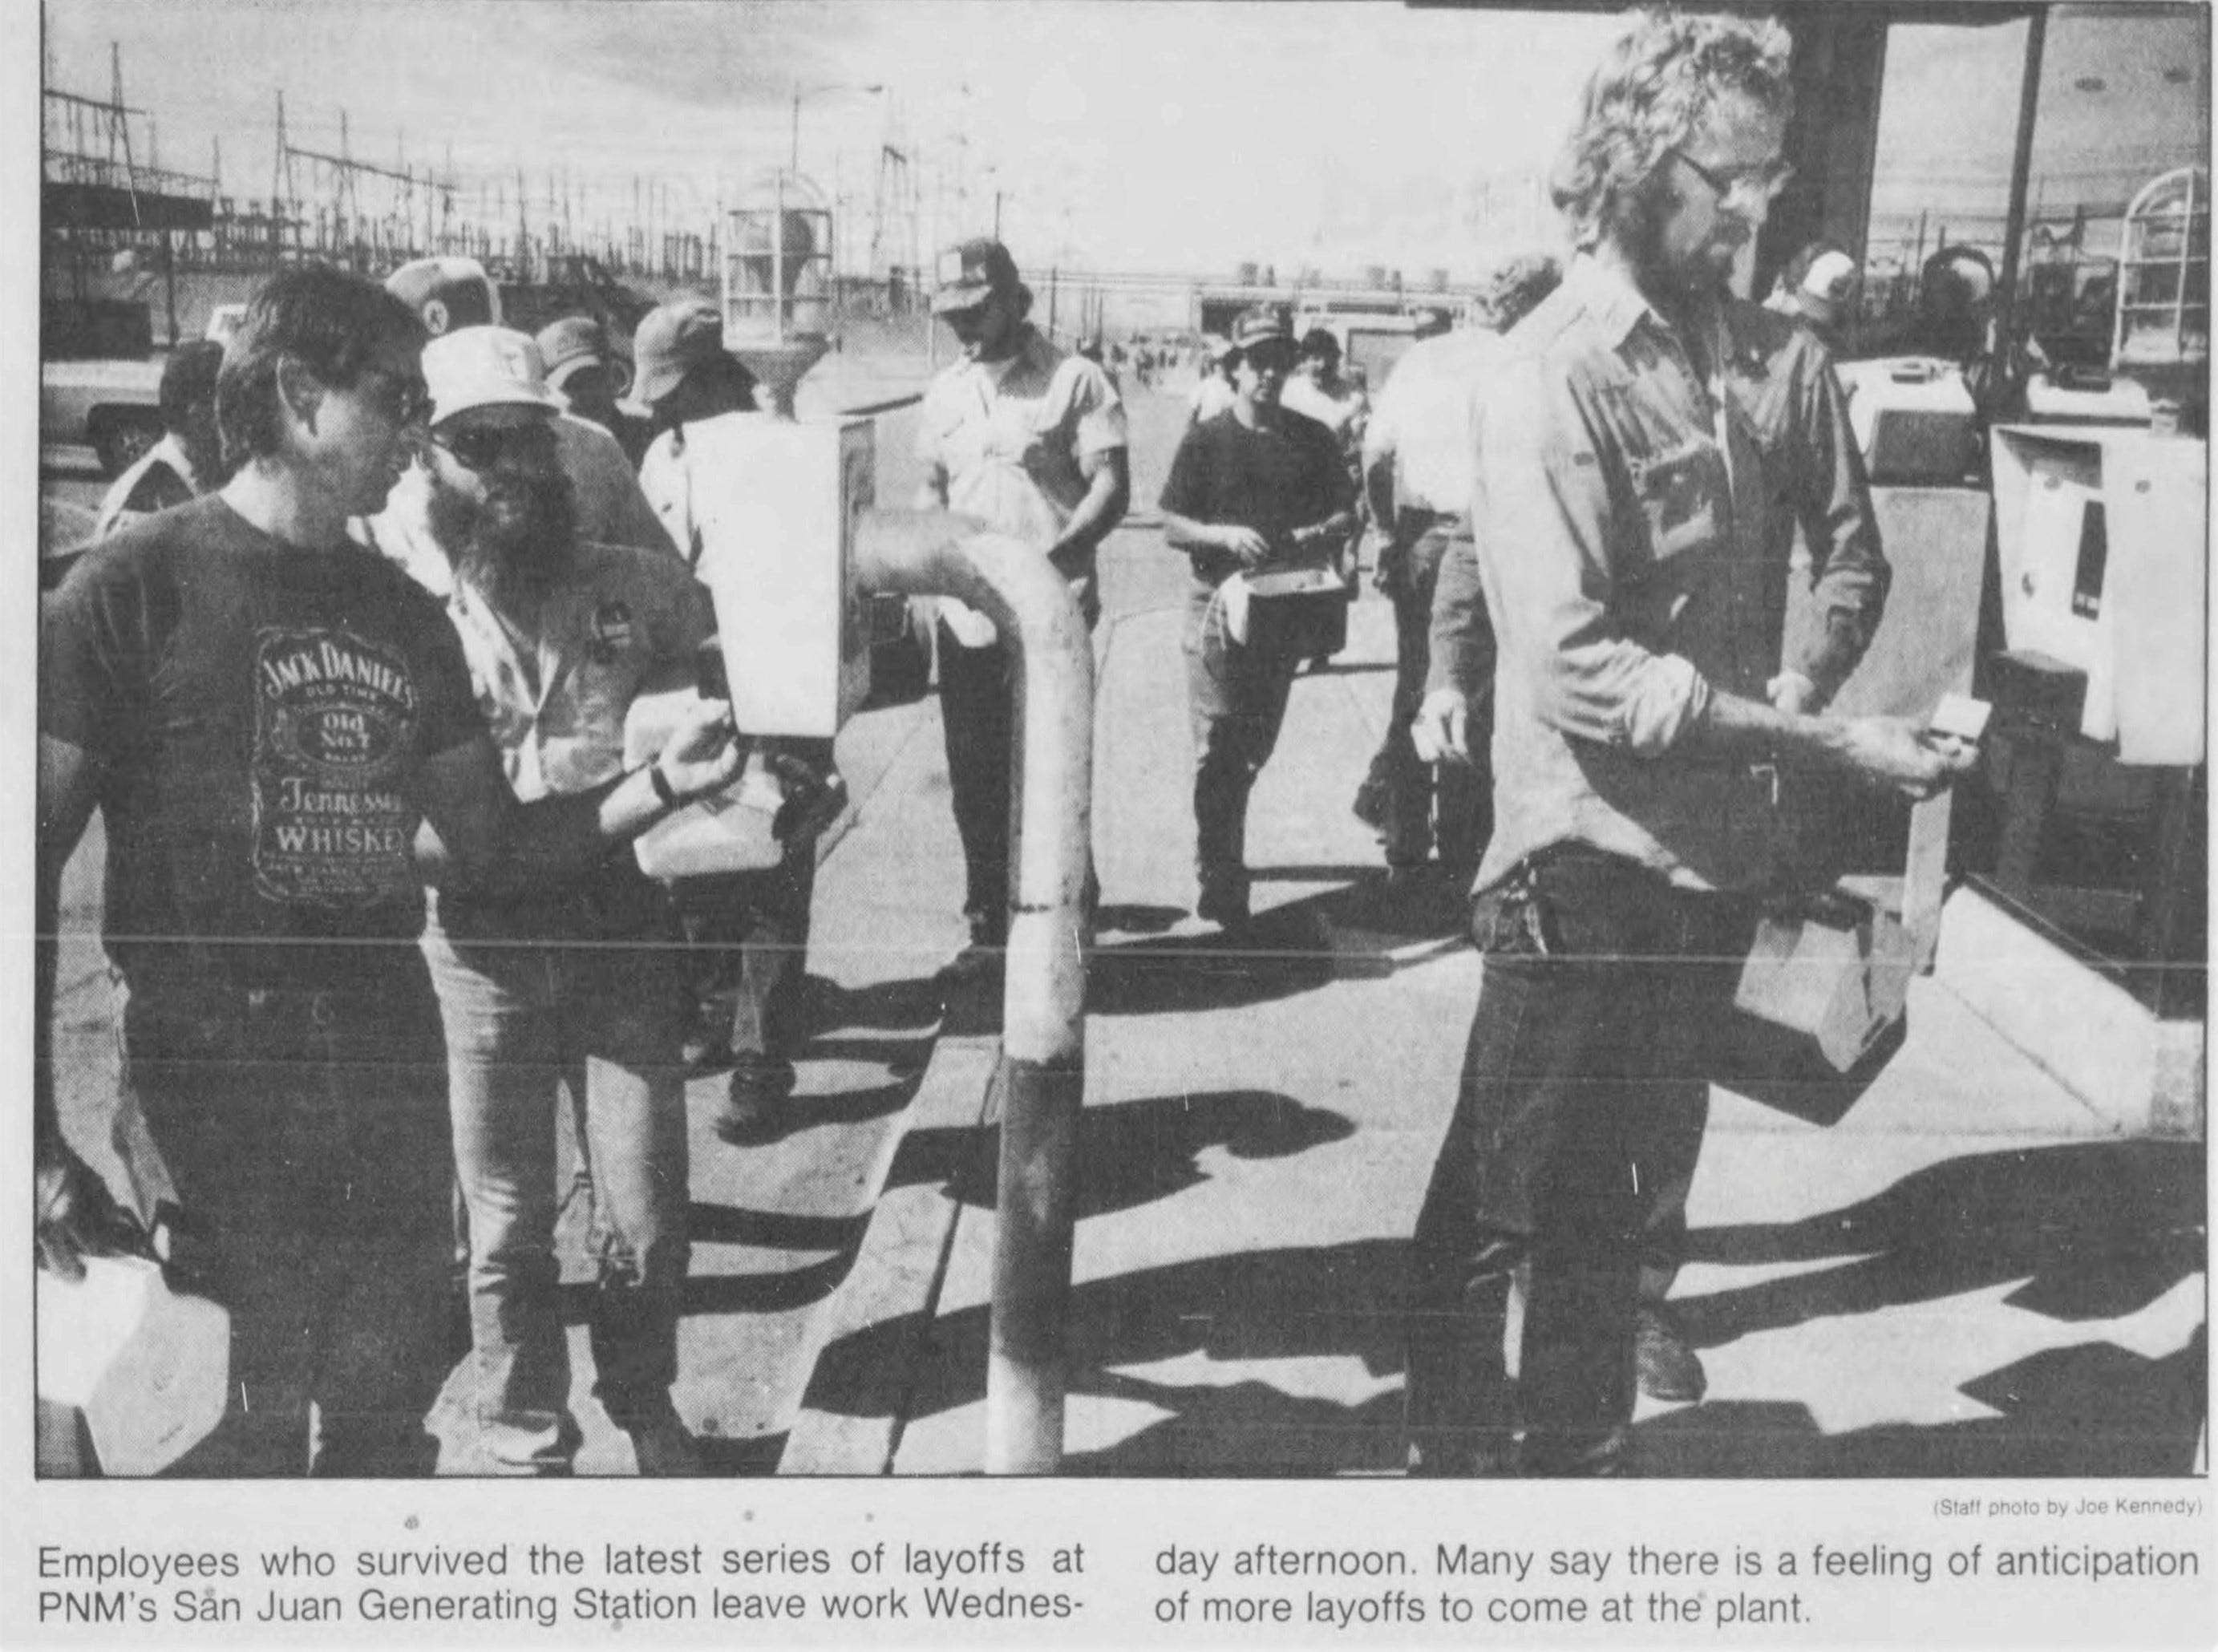 Employees check into work in 1988 at the San Juan Generating Station.